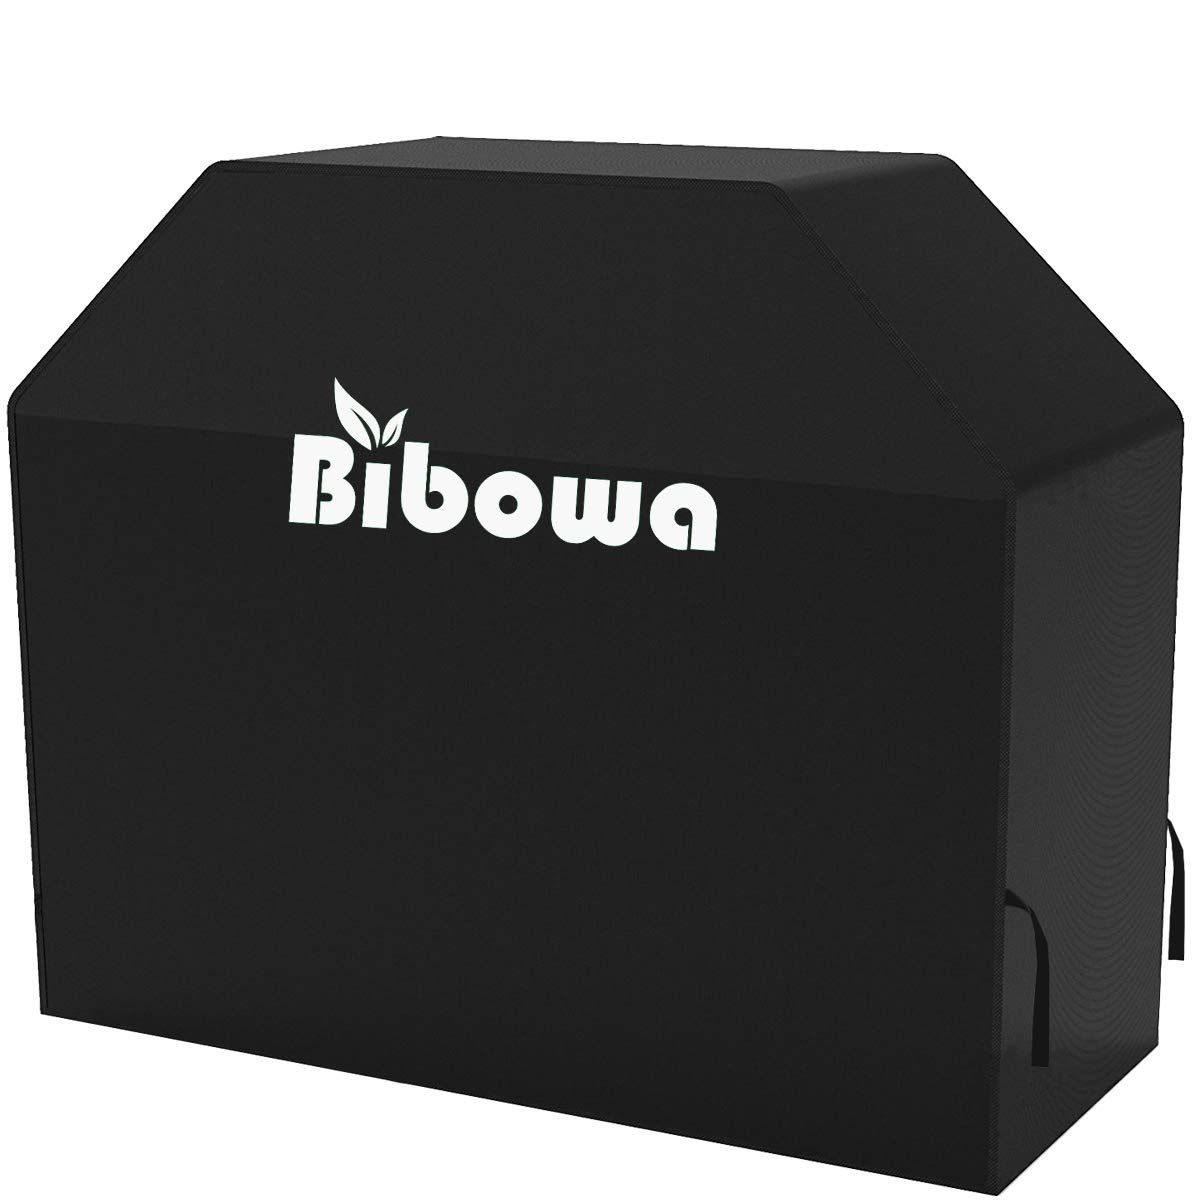 Bibowa BBQ Cover Waterproof - Grill Cover 70-71 - 72-73 - 74 UV Resistant,Double Windproof,Double Waterproof (74.8''-28''-46'')